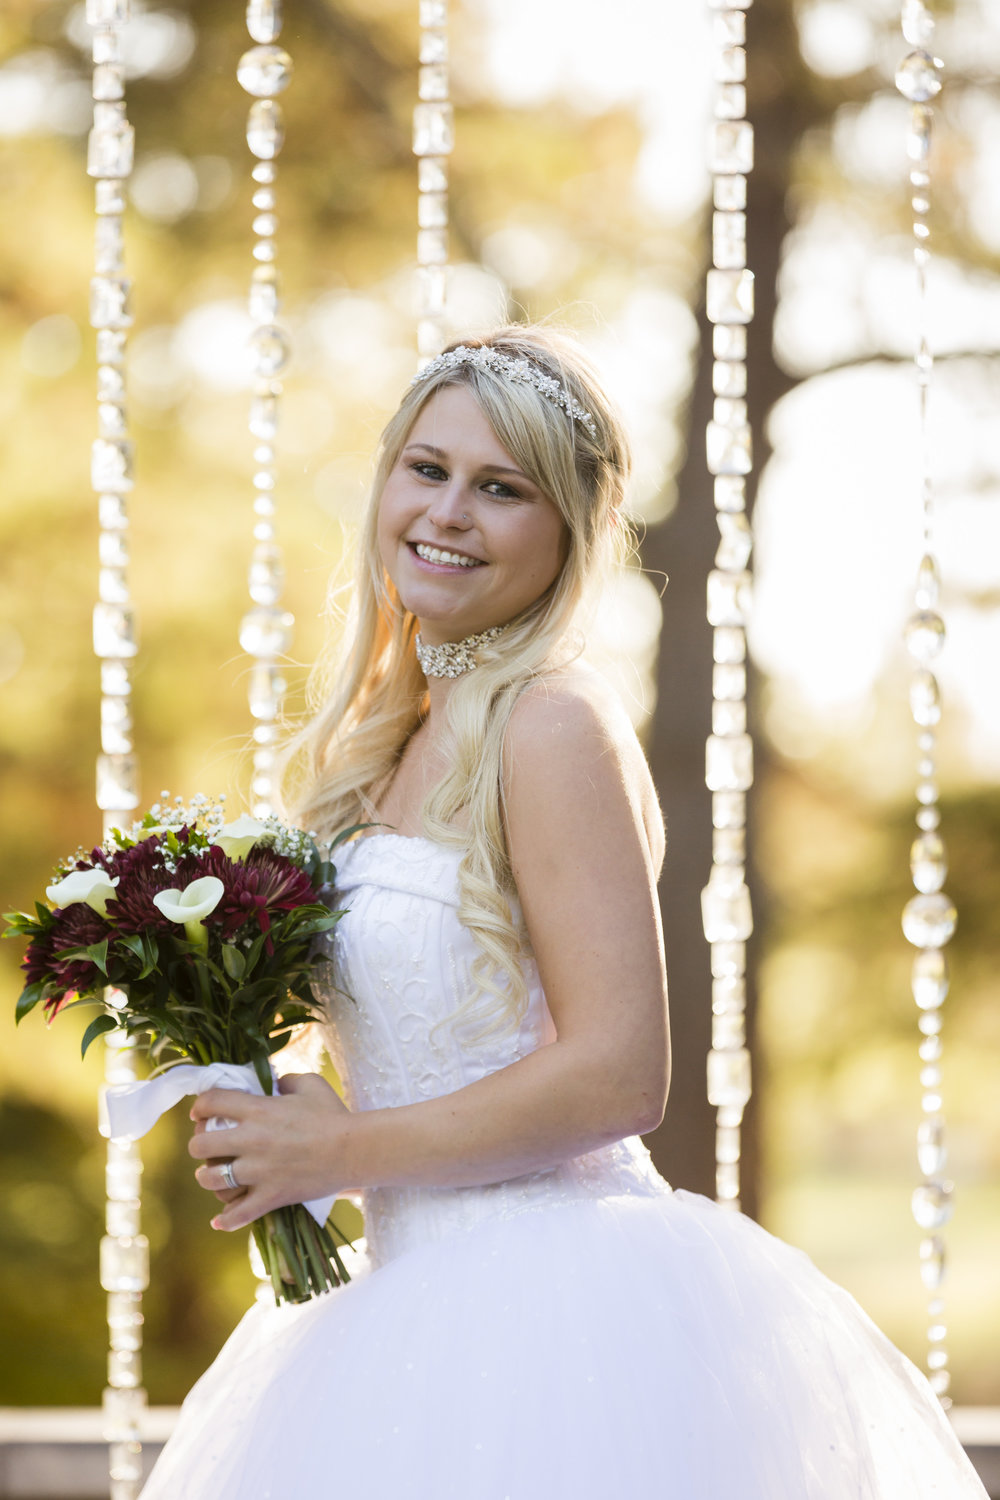 bridal-portrait-wedding-day-lauren-1.jpg